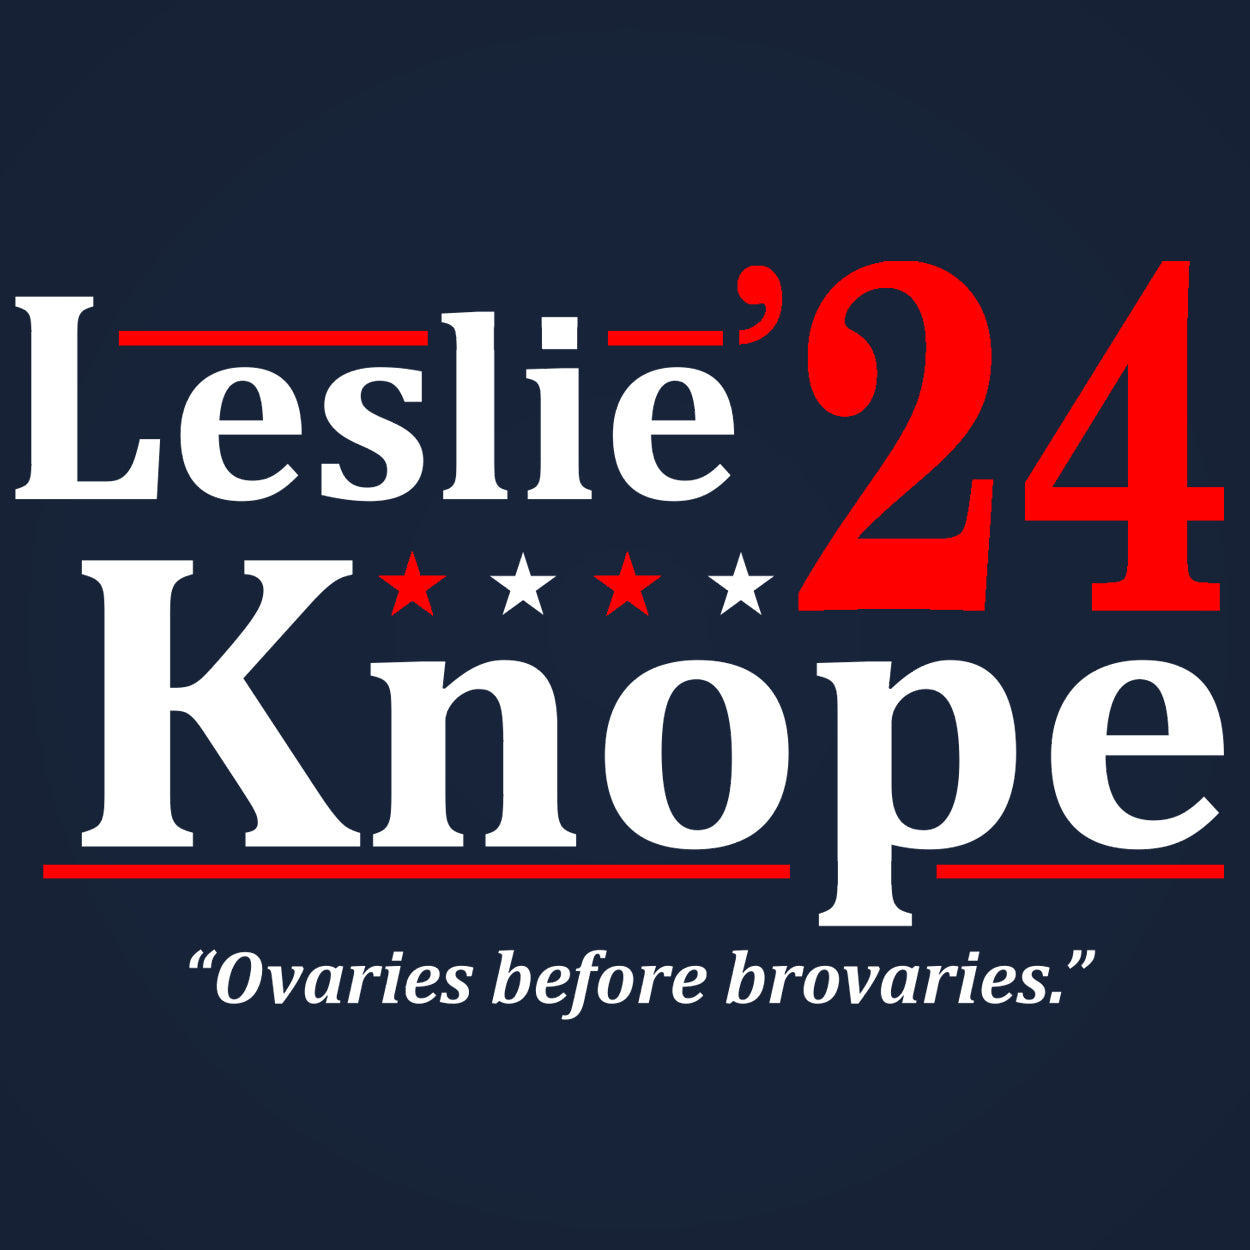 LESLIE KNOPE 2024 Election